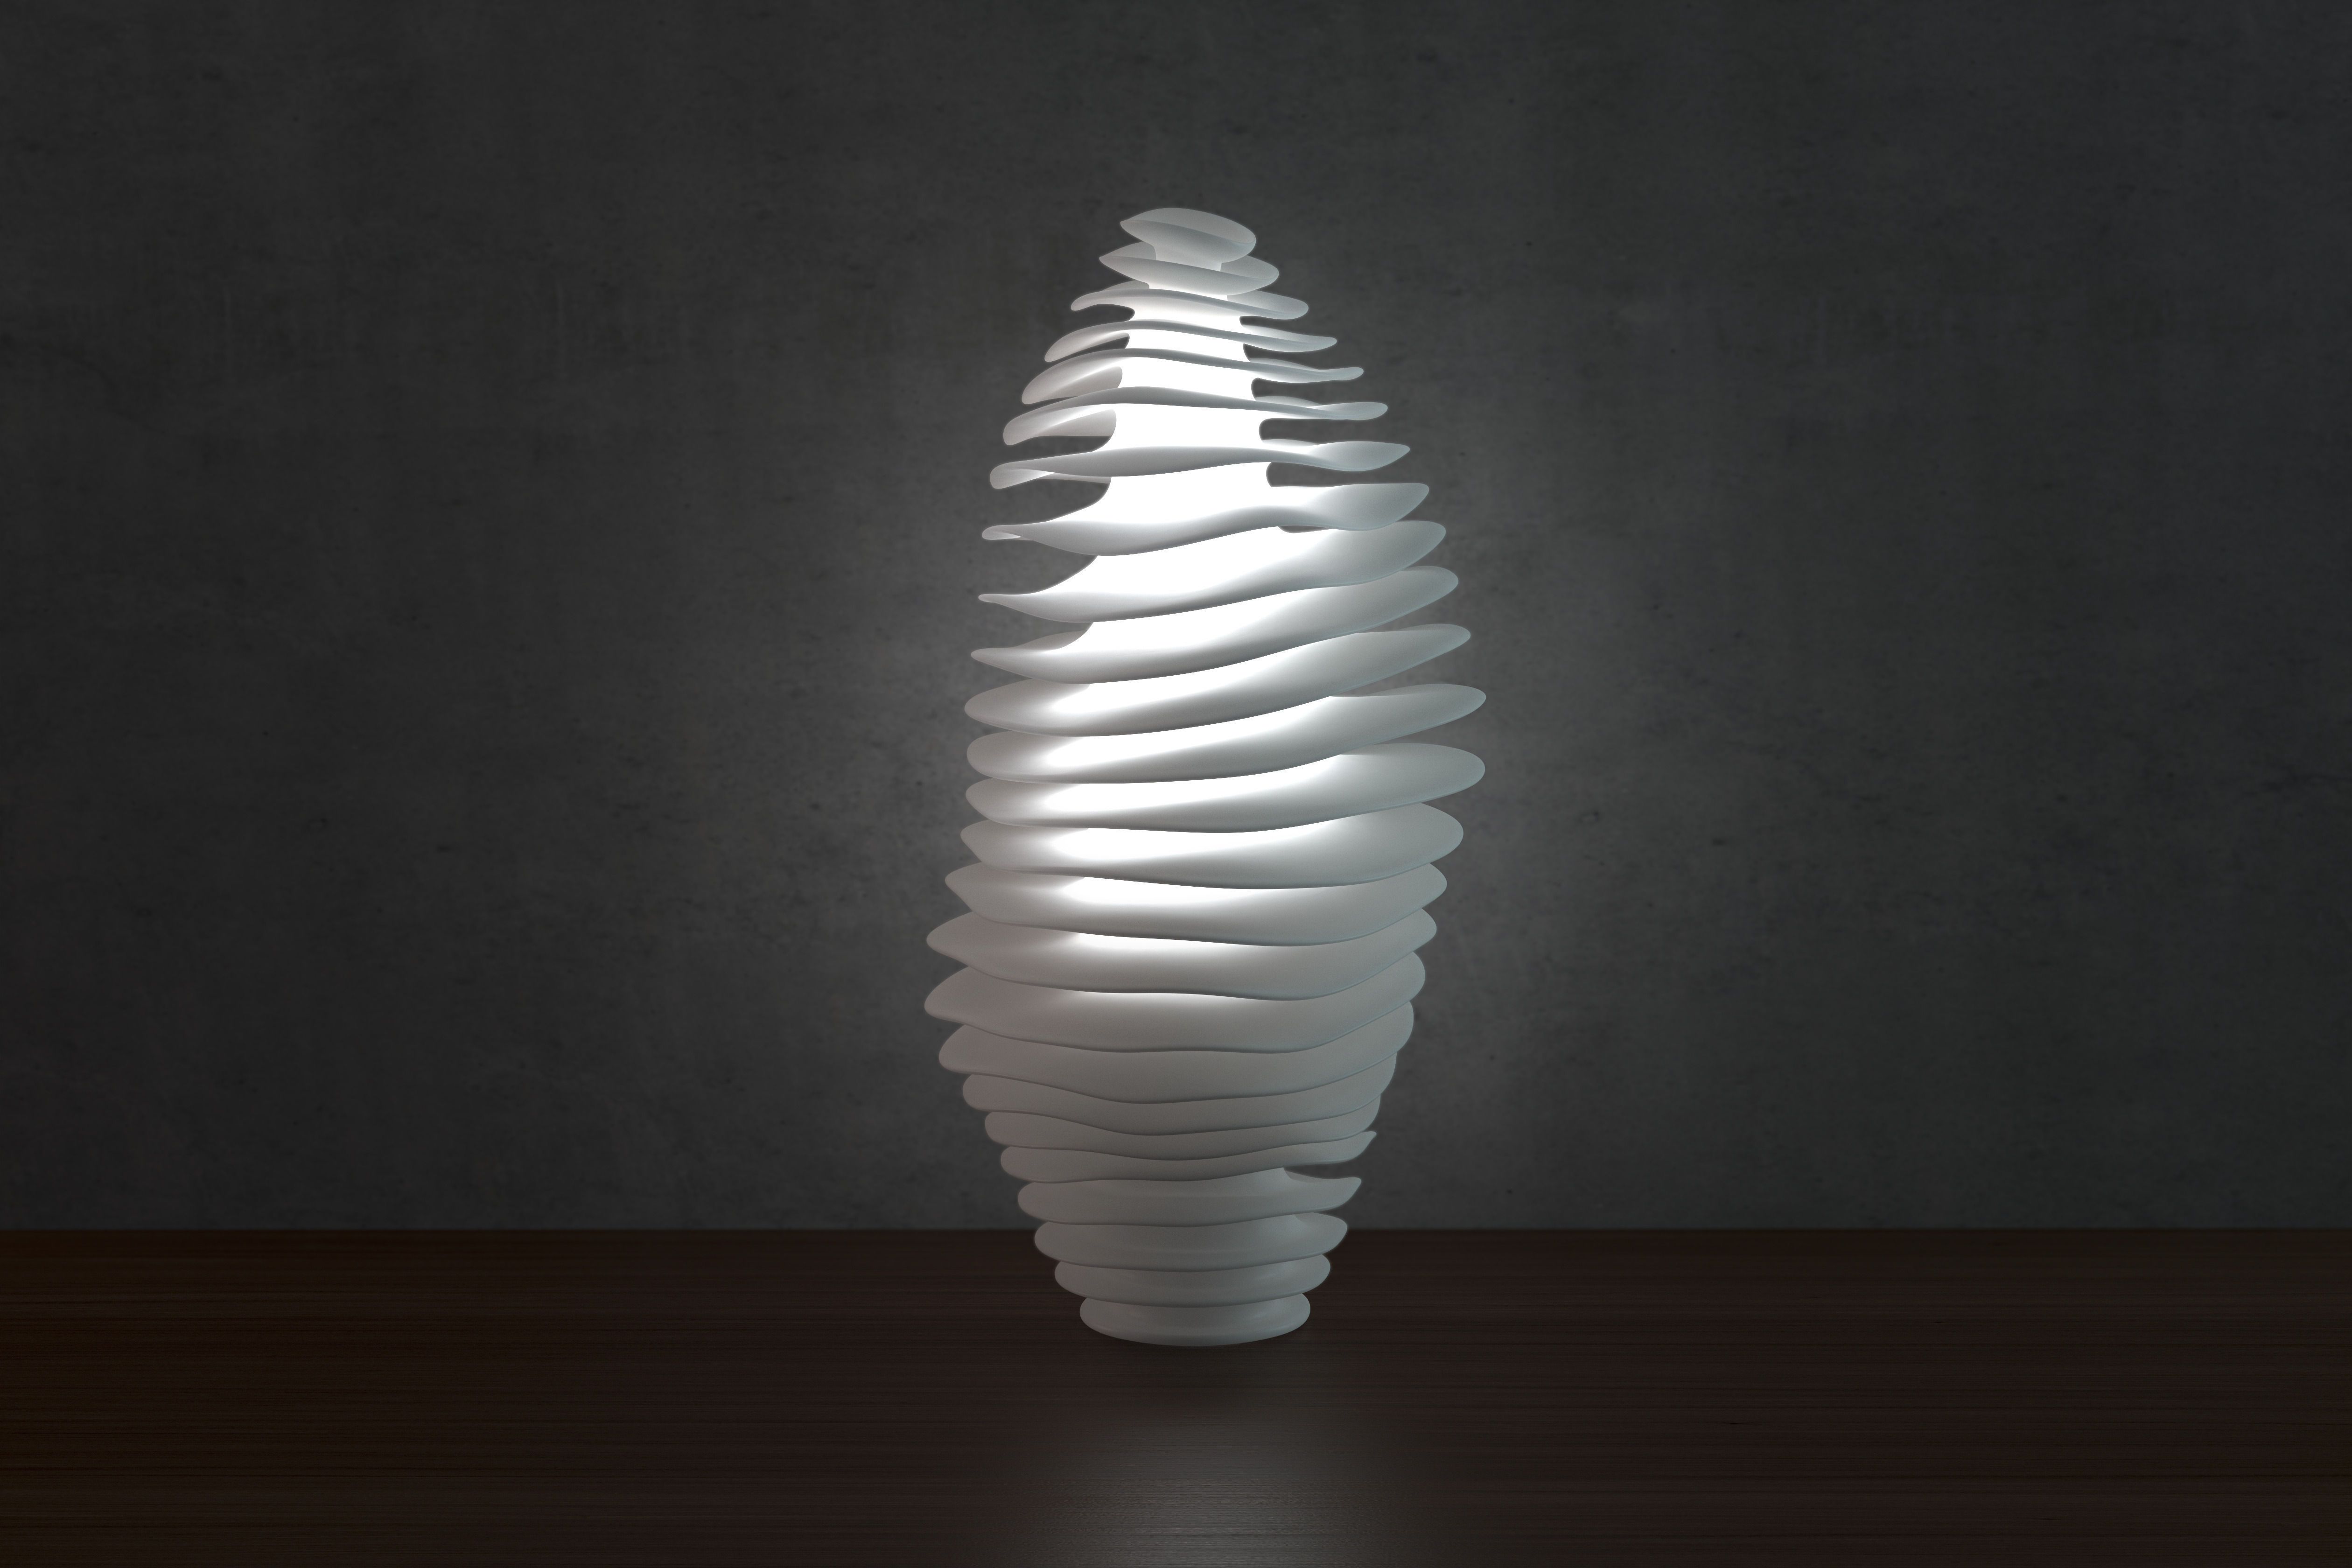 Wave lamp 3 high quality version